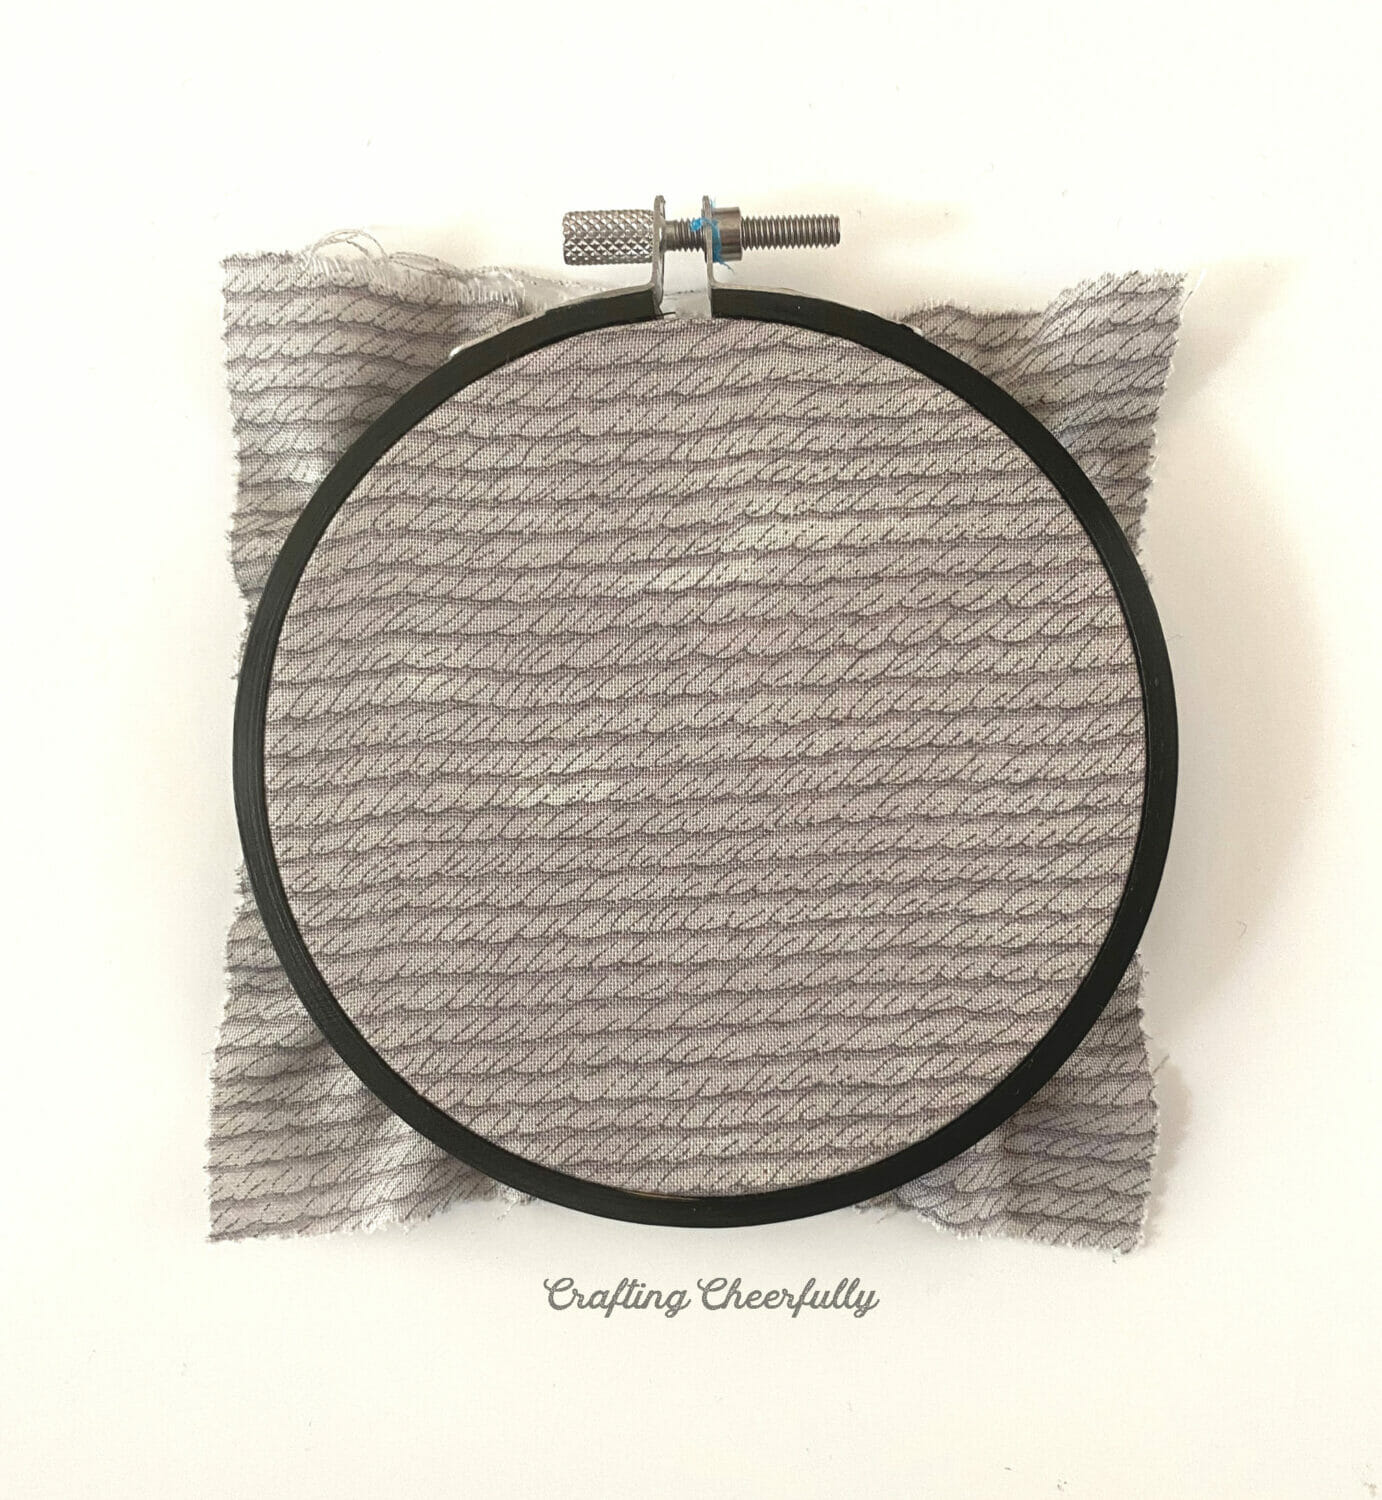 Gray fabric in a black embroidery hoop.